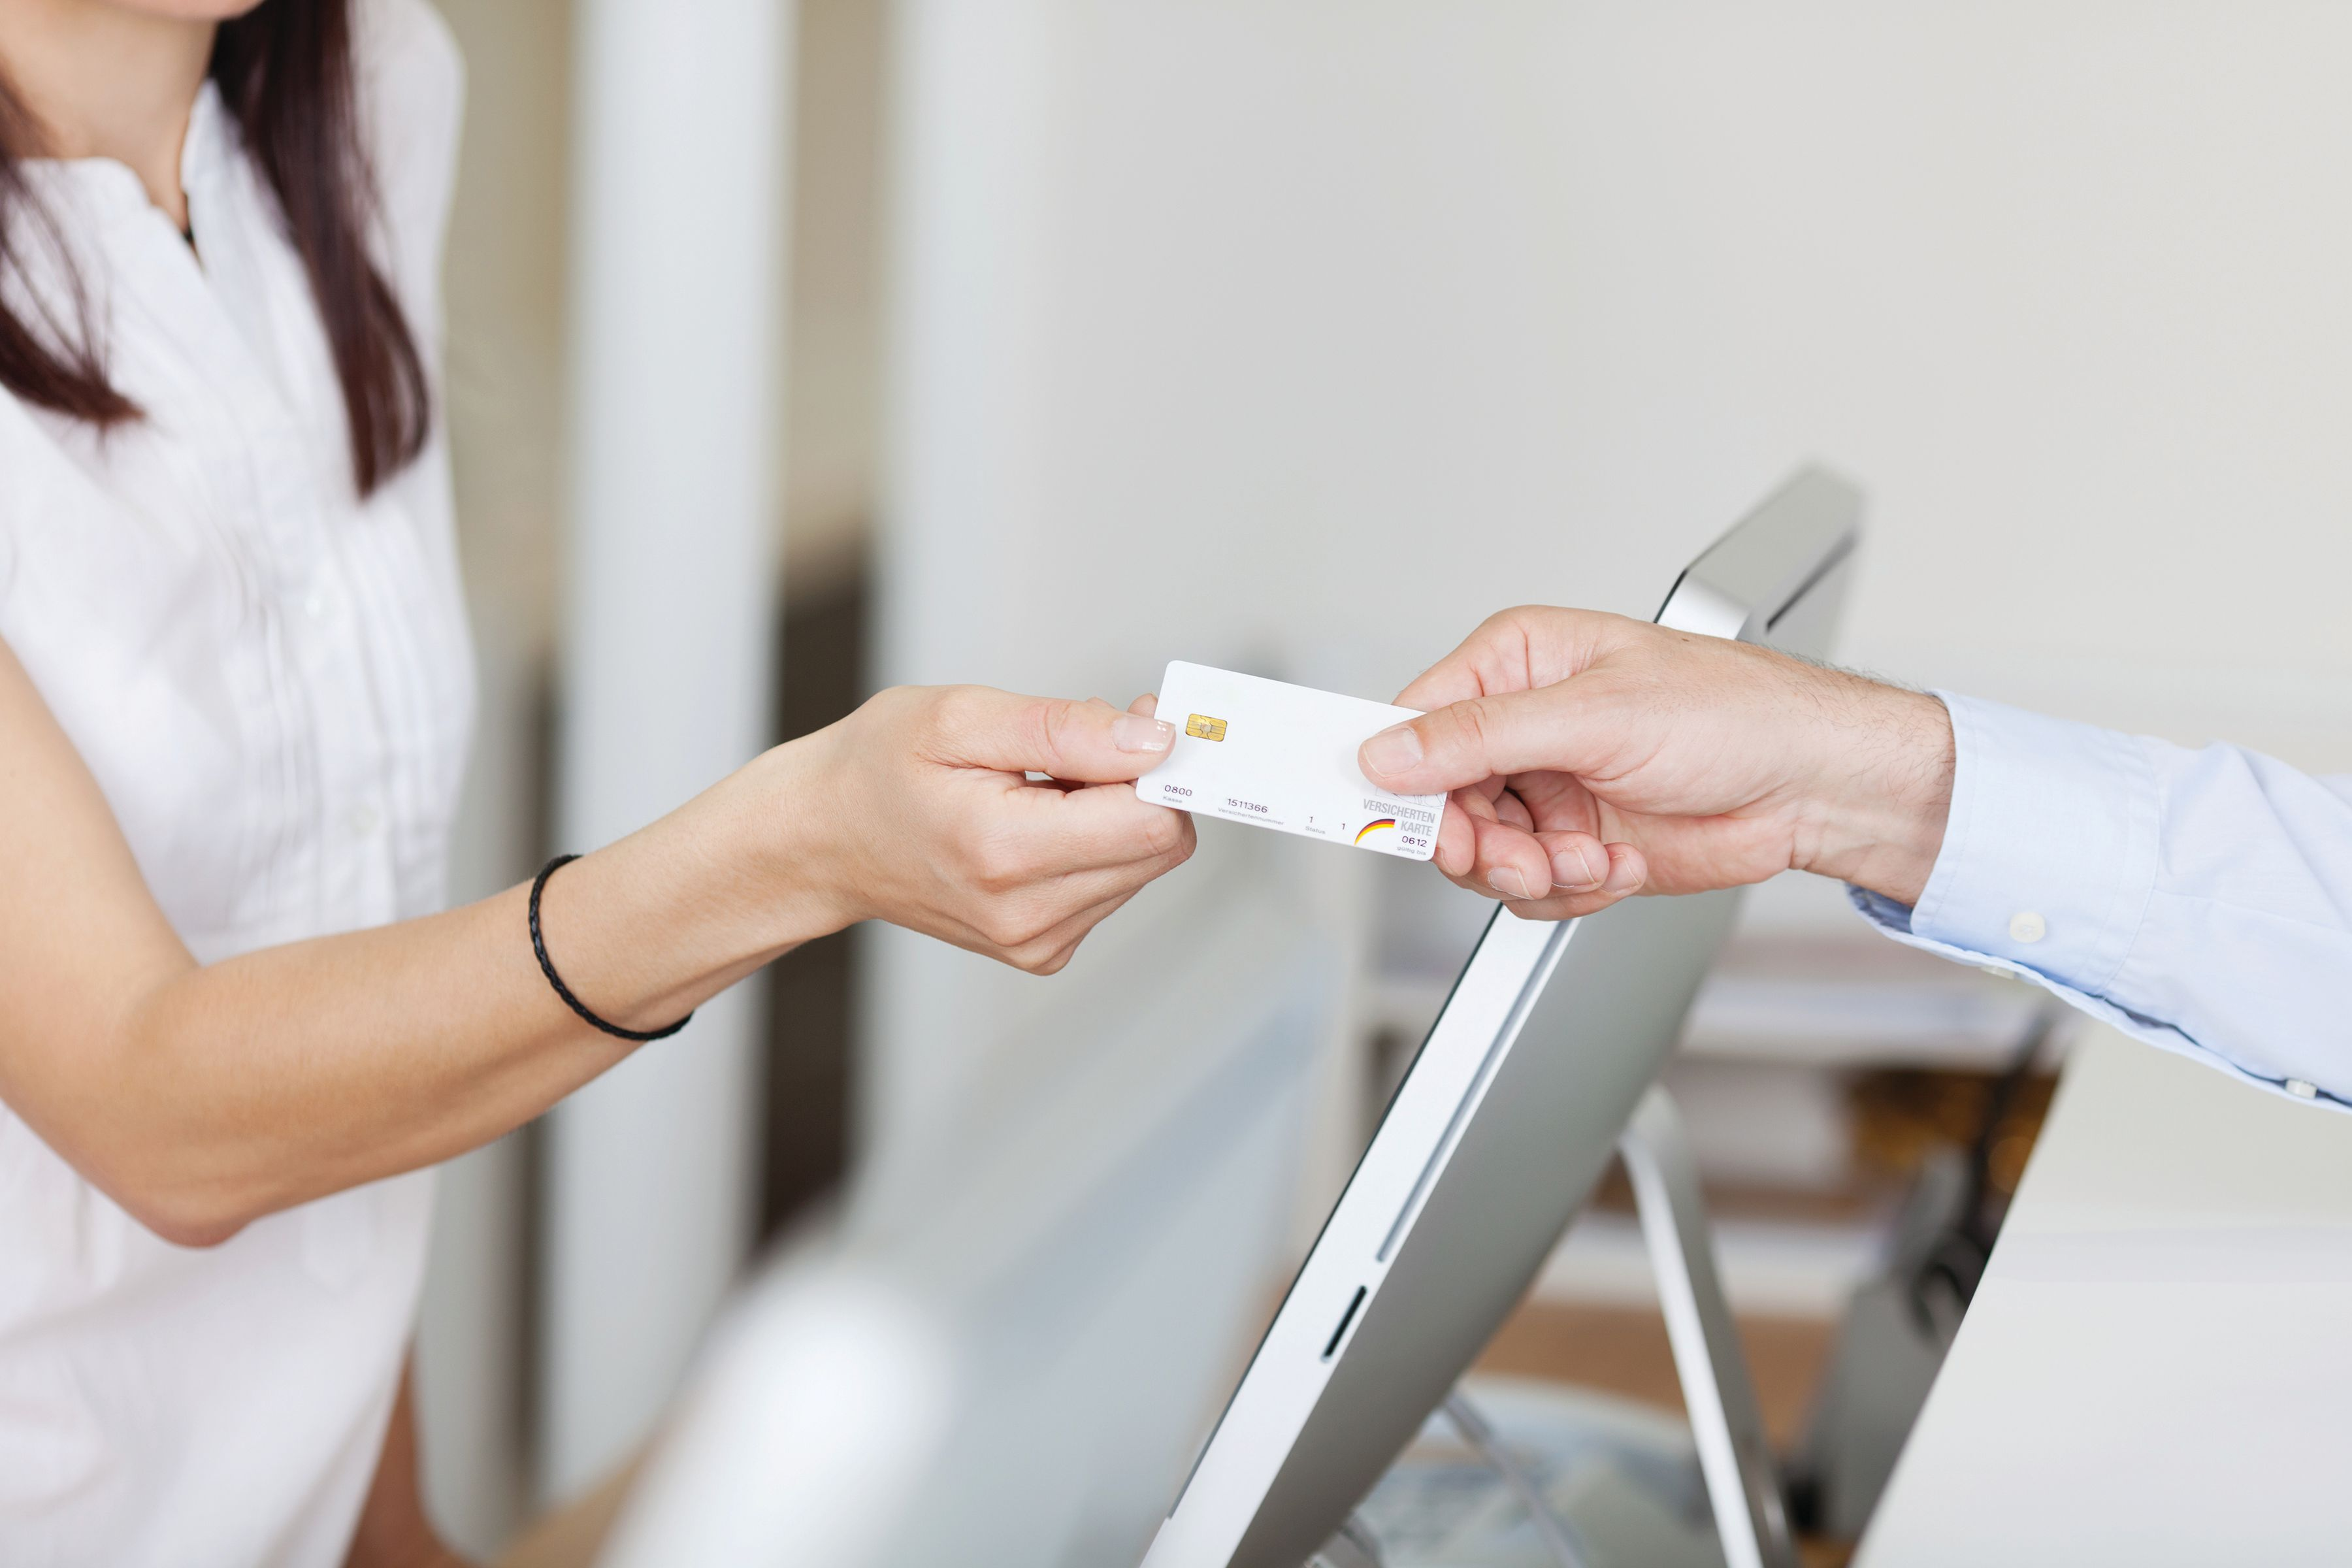 Break away from the credit card transaction trap.